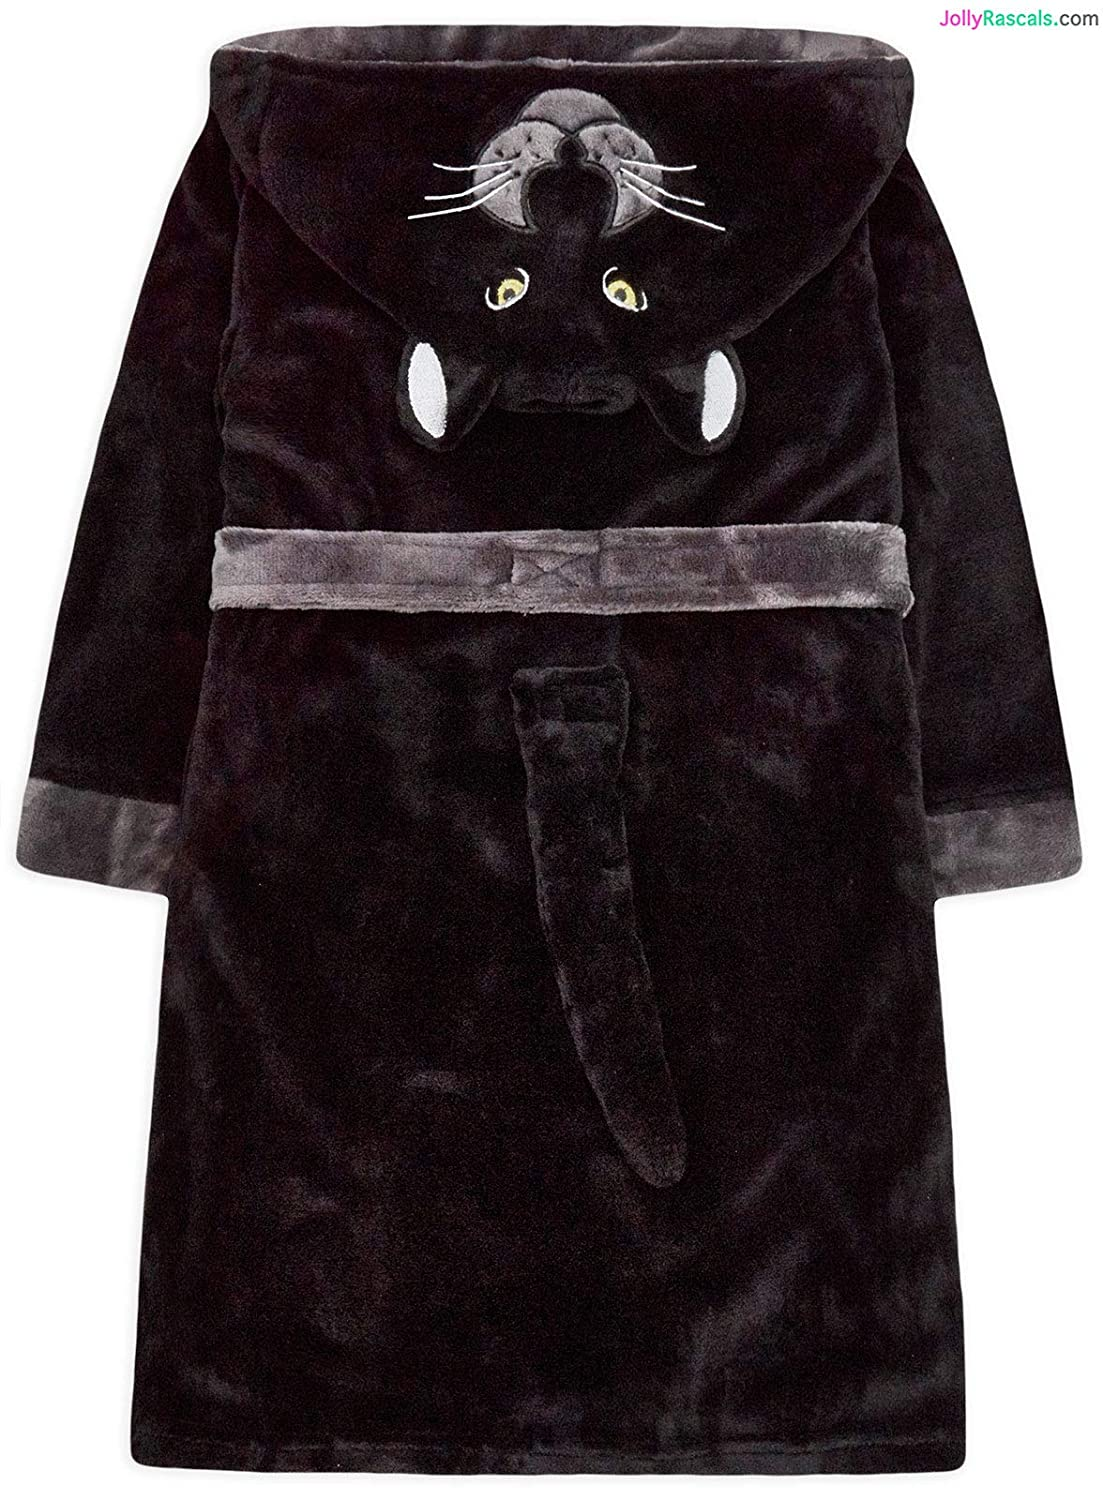 JollyRascals Boys Dressing Gown Black Panther Hooded Soft Robe Kids New Ages 7 8 9 10 11 12 13 Years